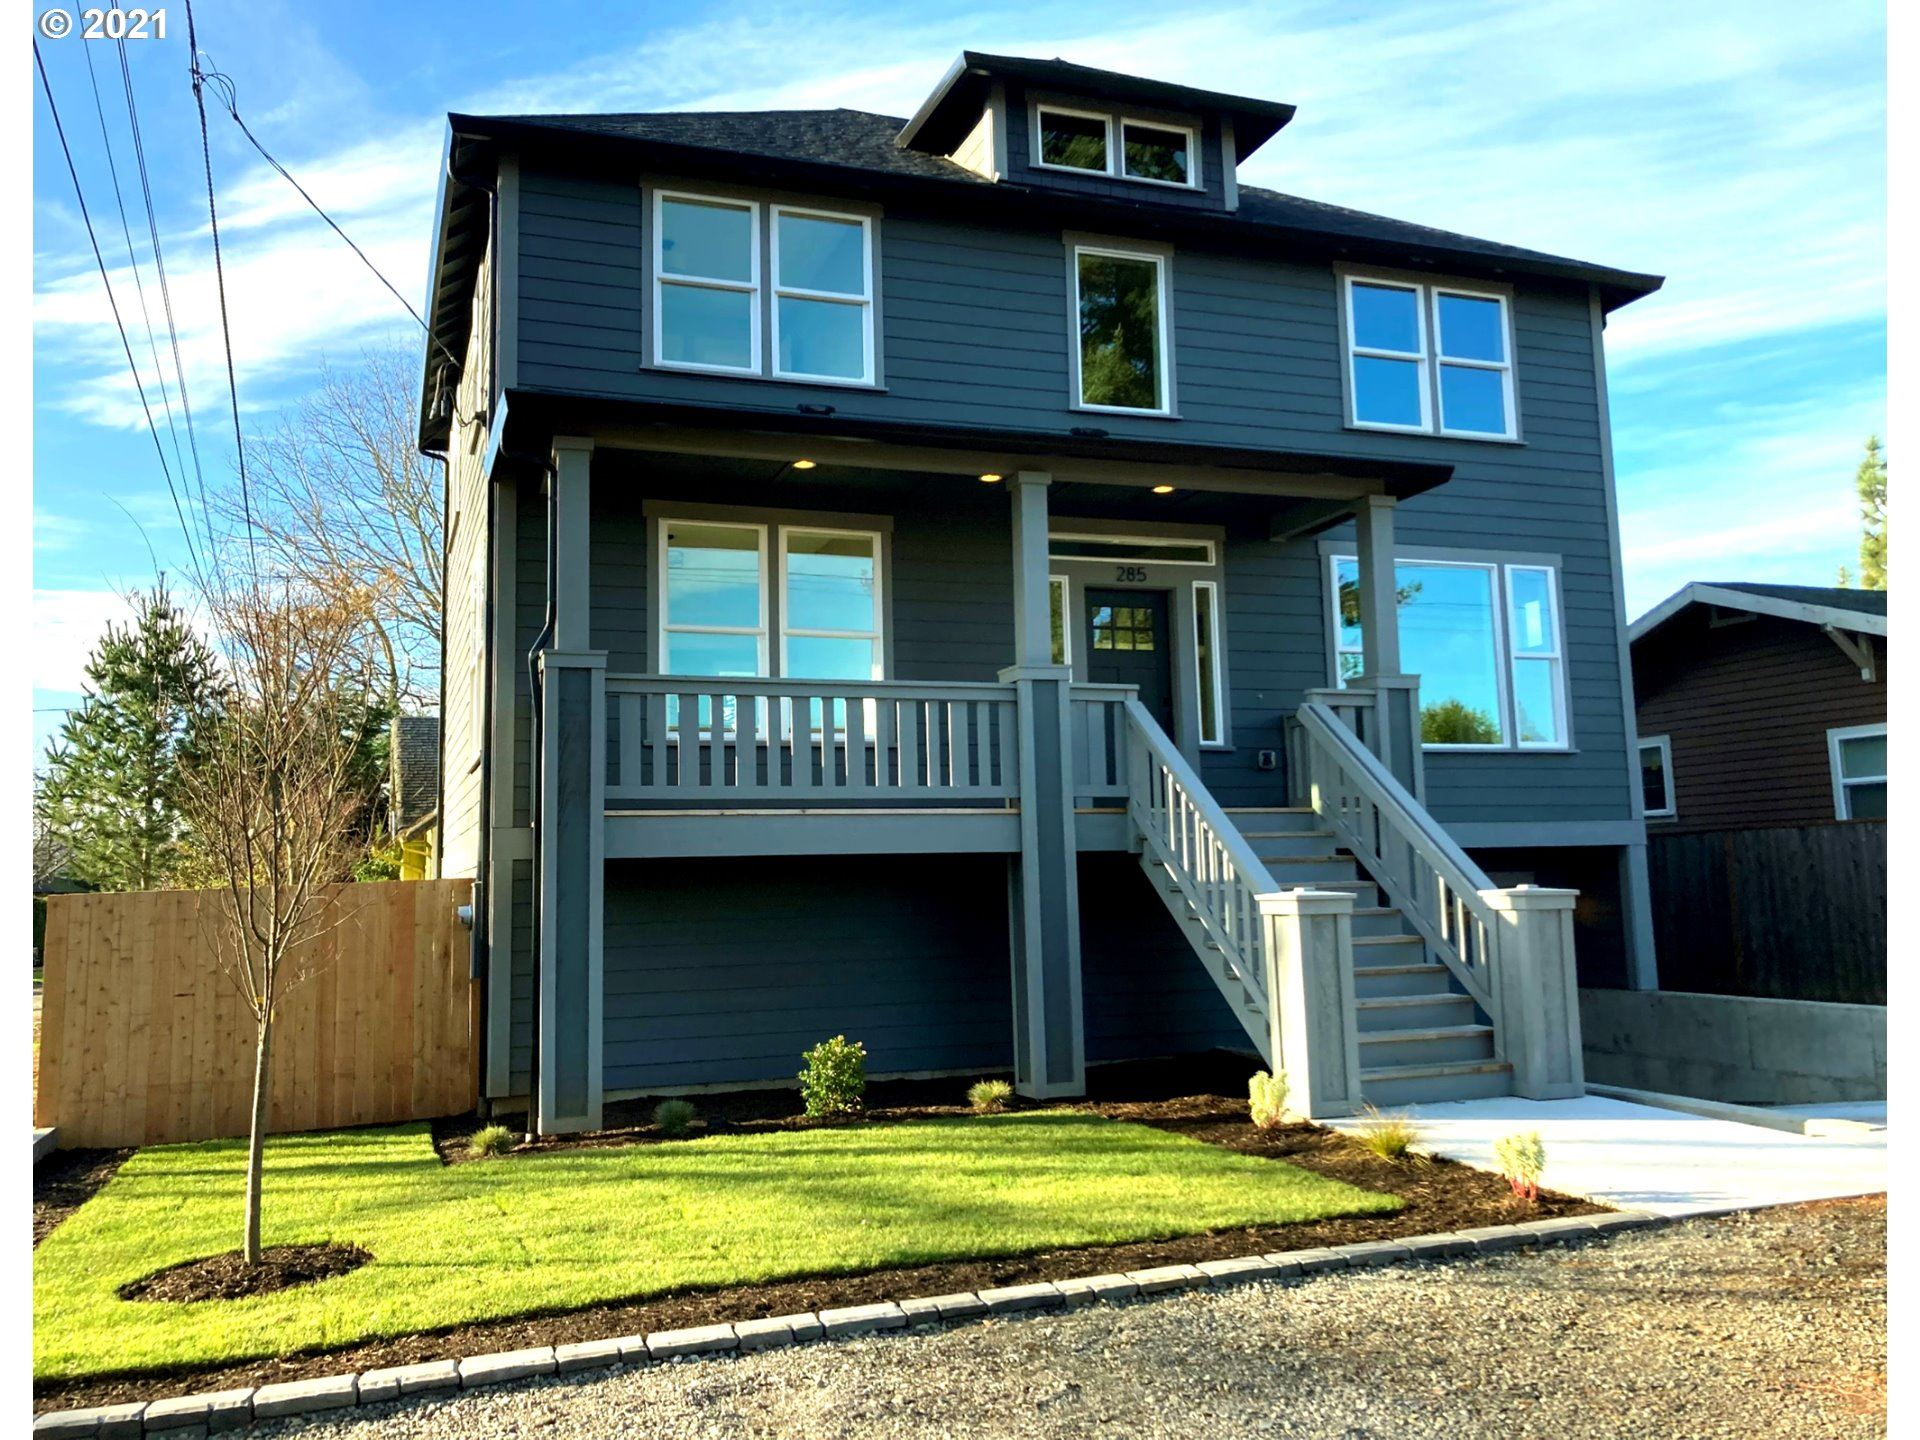 285 SE 90th AVE, Portland, OR 97216 - MLS#: 21476442